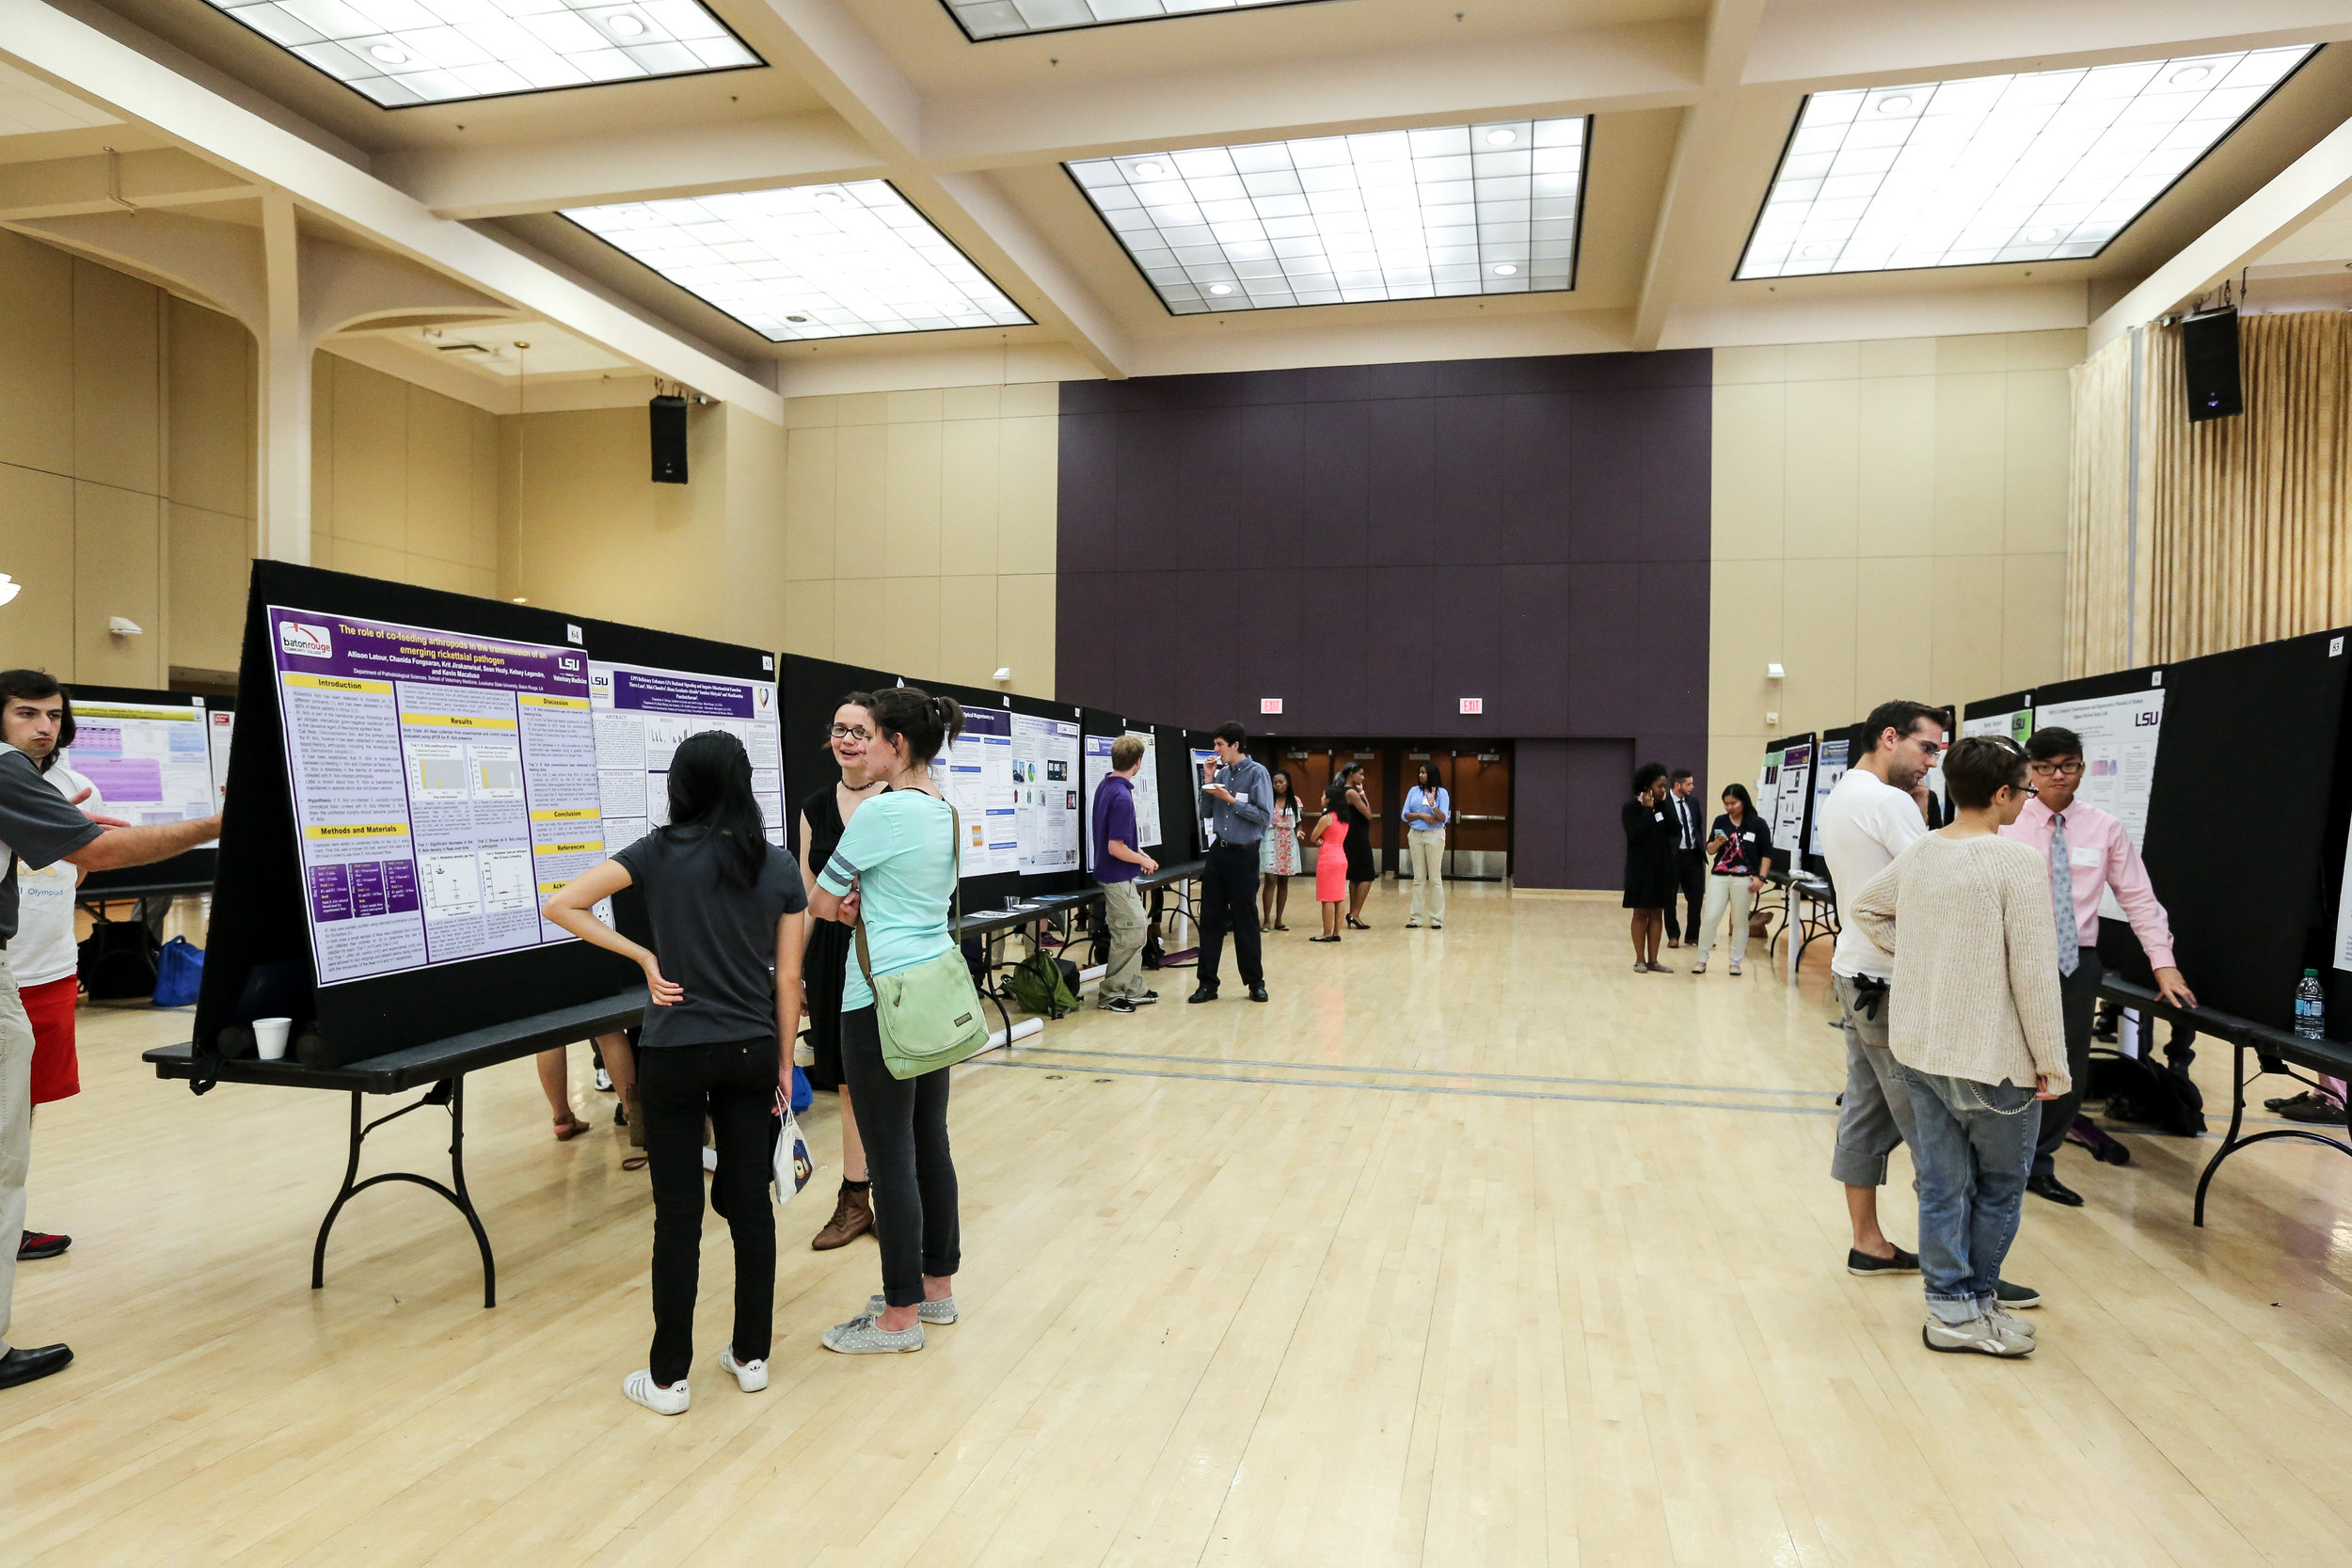 Undergraduate students present their research at LSU. Photo credit: Paige Jarreau.